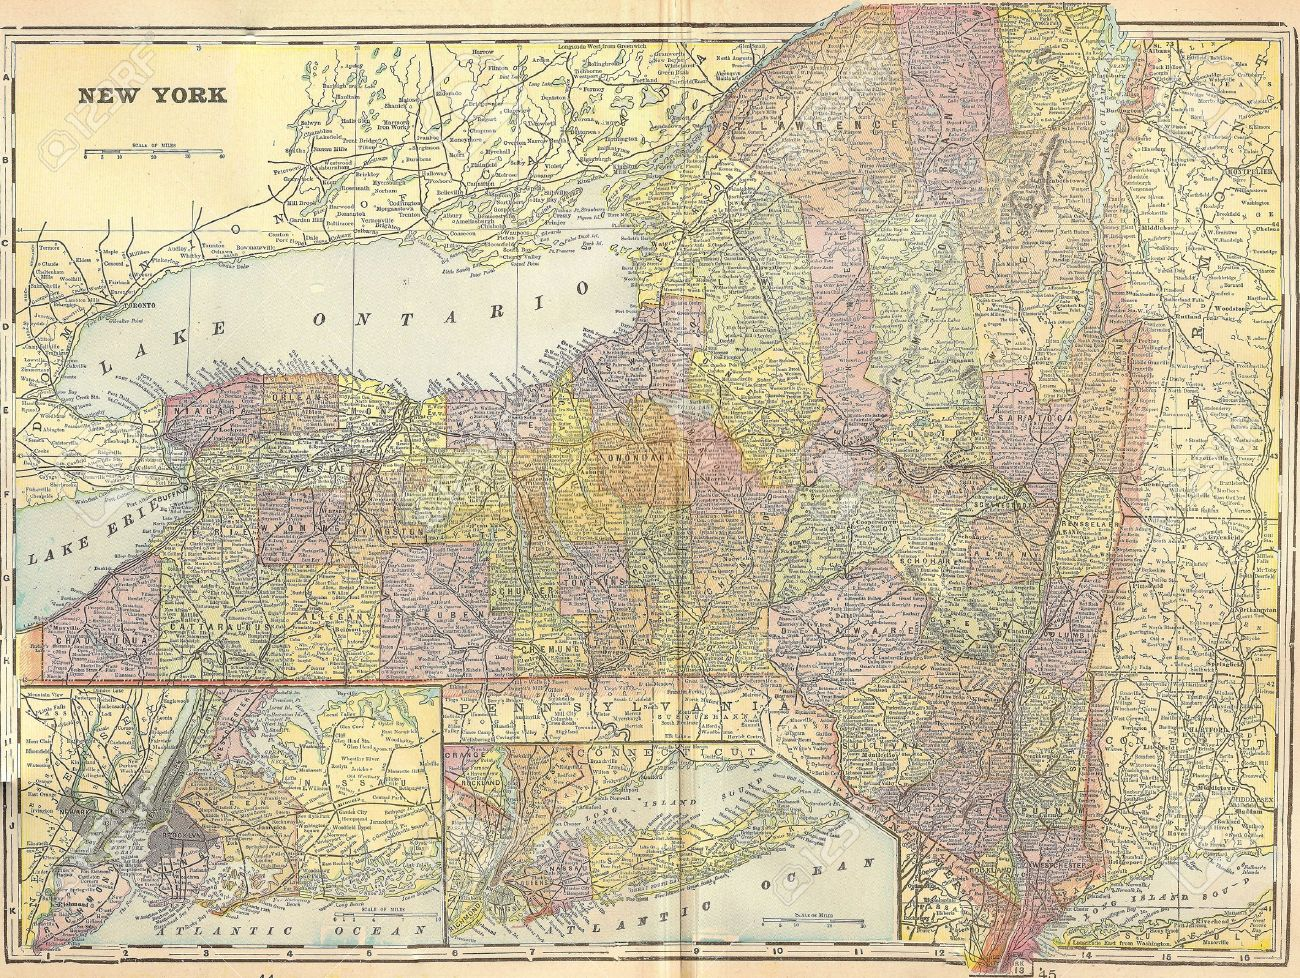 Vintage 1896 Map Of New York State Stock Photo, Picture And Royalty ...